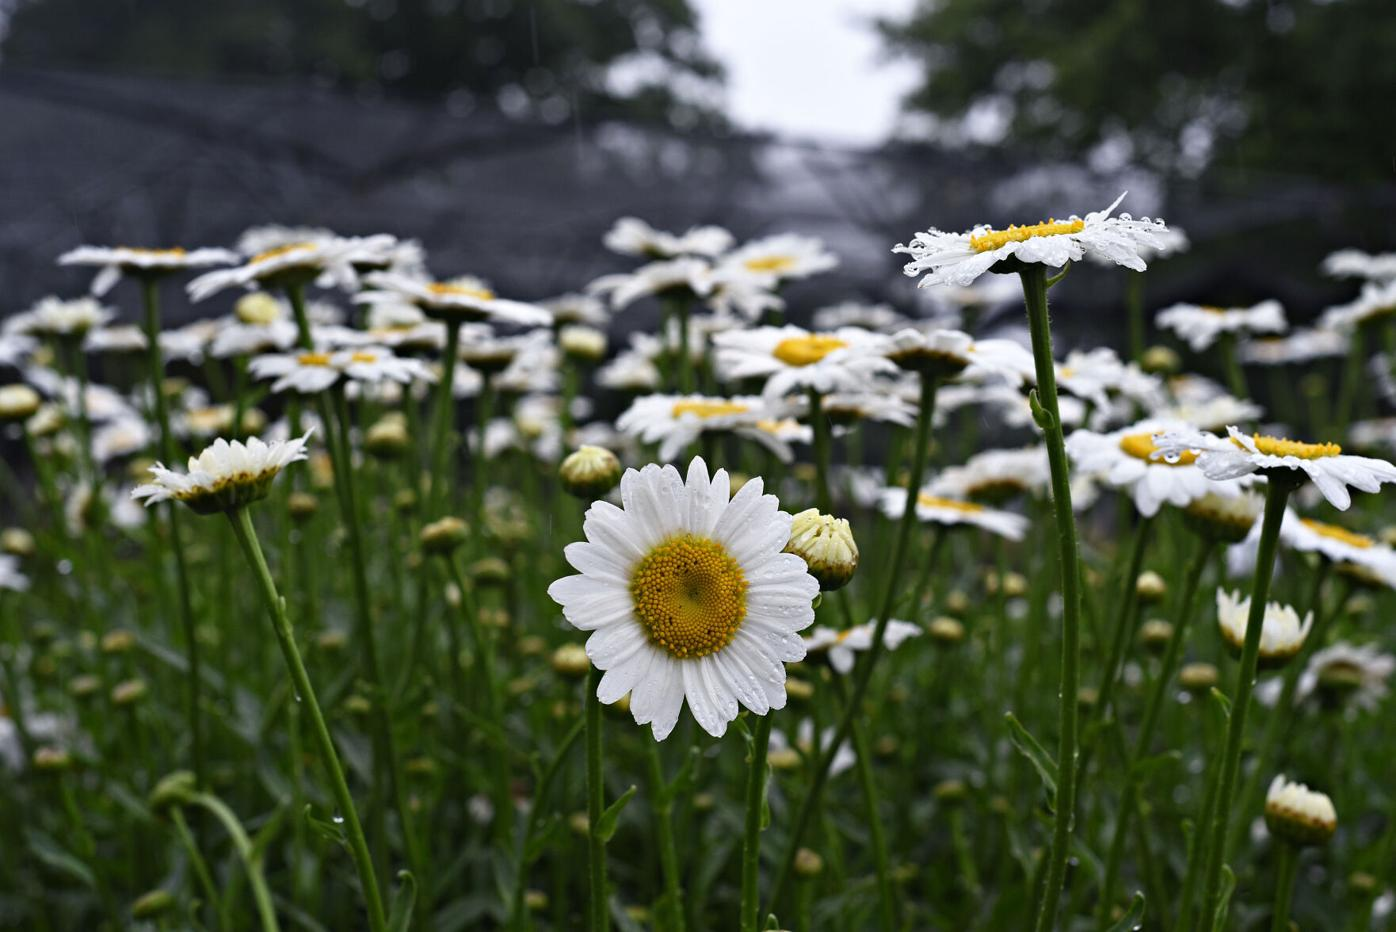 White daisies with yellow centers at Ward's Nursery.